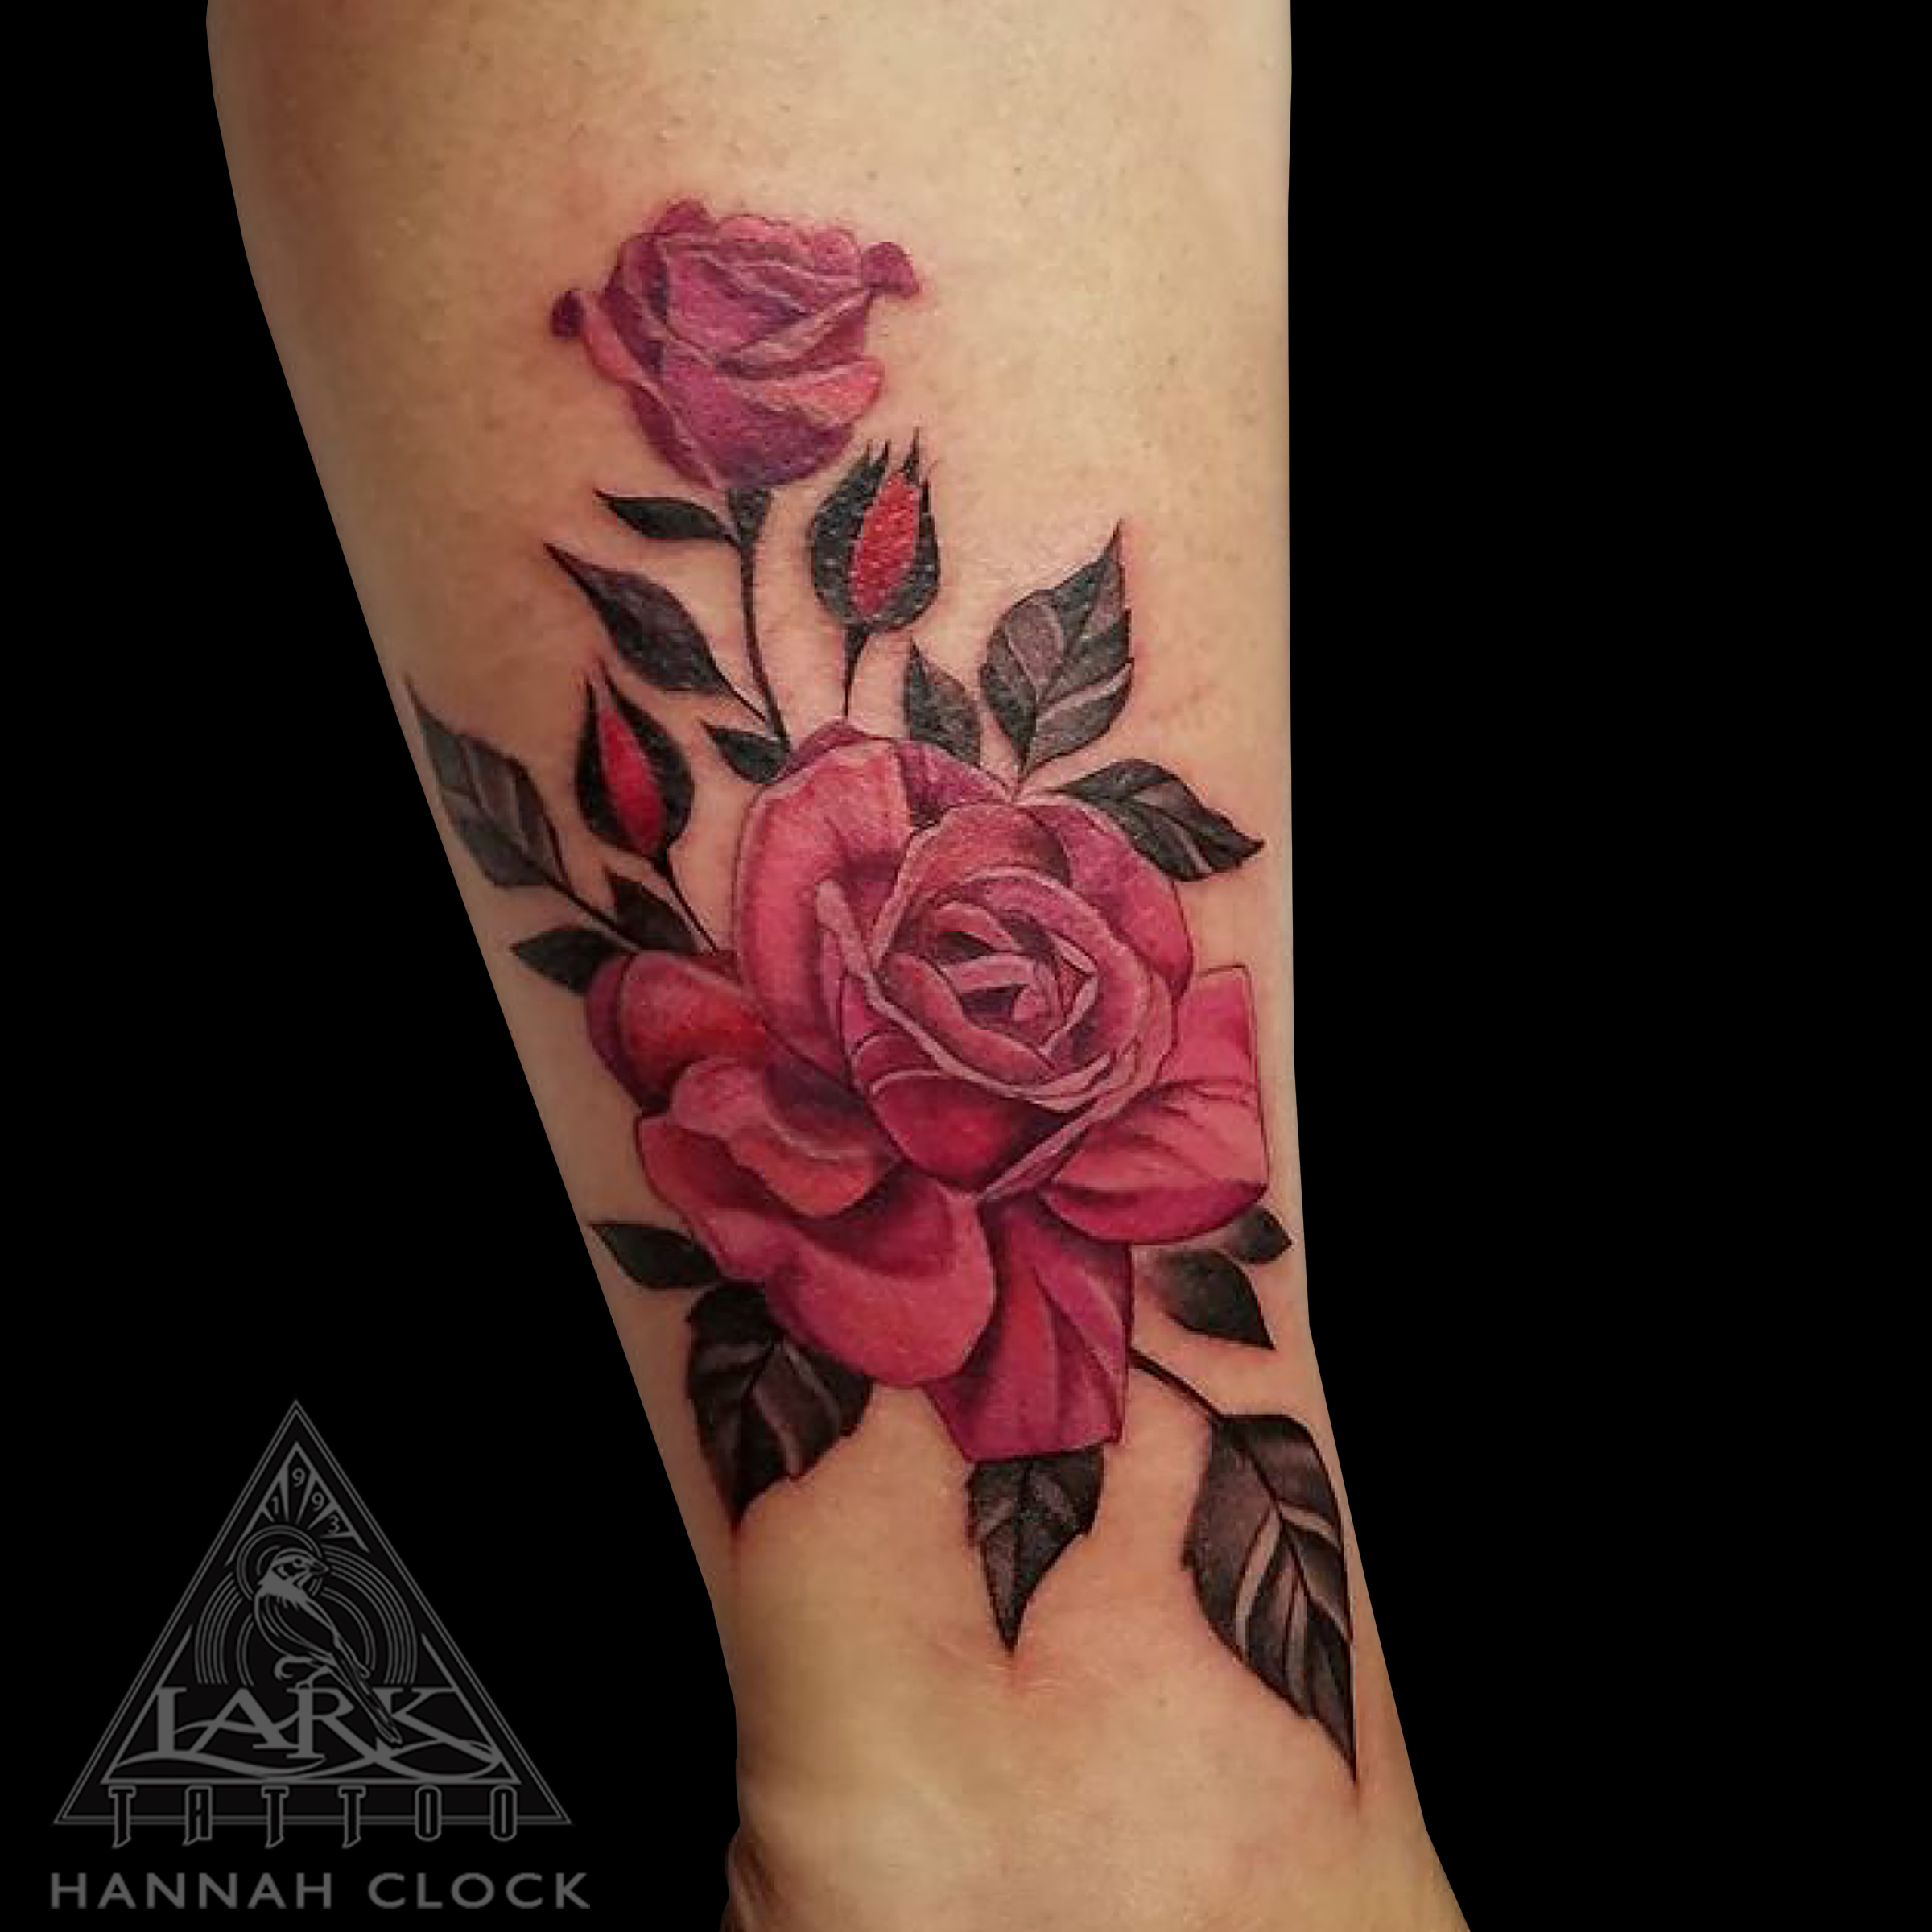 rose, rosetattoo, colortattoo, pinkrose, pinkrosetattoo, ankletattoo, femininetattoo, customtattoo, femaletattooer, femaleartist, femaletattooartist, delicatetattoo, tattoo, tattoos, tat, tats, tatts, tatted, tattedup, tattoist, tattooed, inked, inkedup, ink, tattoooftheday, amazingink, bodyart, tattooig, tattoosofinstagram, instatats , larktattoo, larktattoos, larktattoowestbury, westbury, longisland, NY, NewYork, usa, art